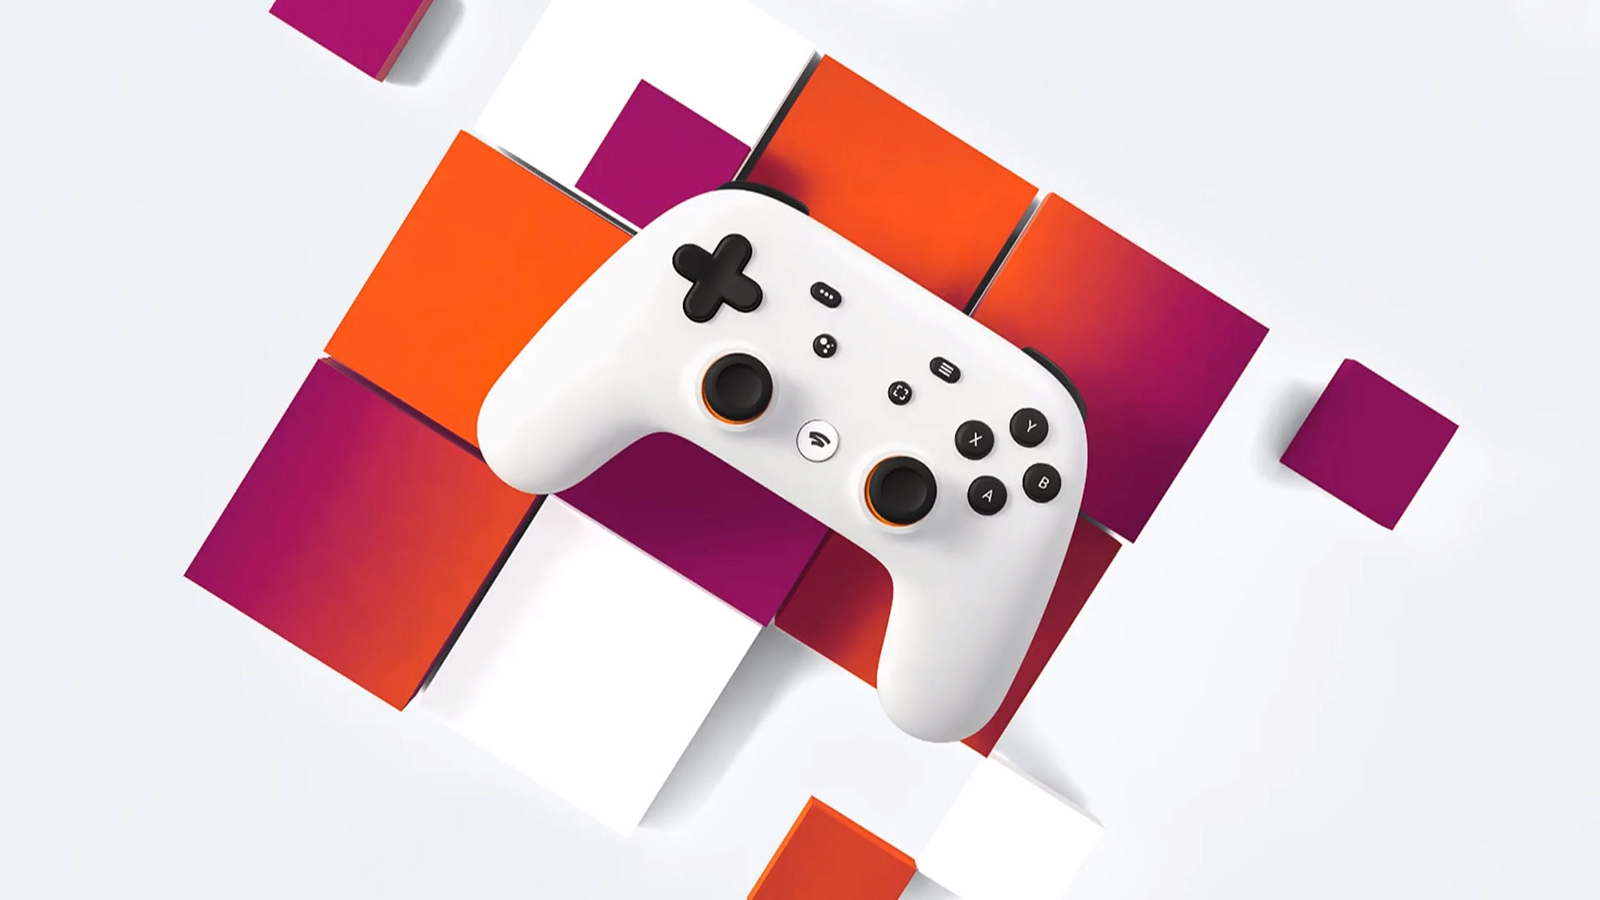 google-stadia-could-be-coming-to-a-lot-more-devices-in-the-future